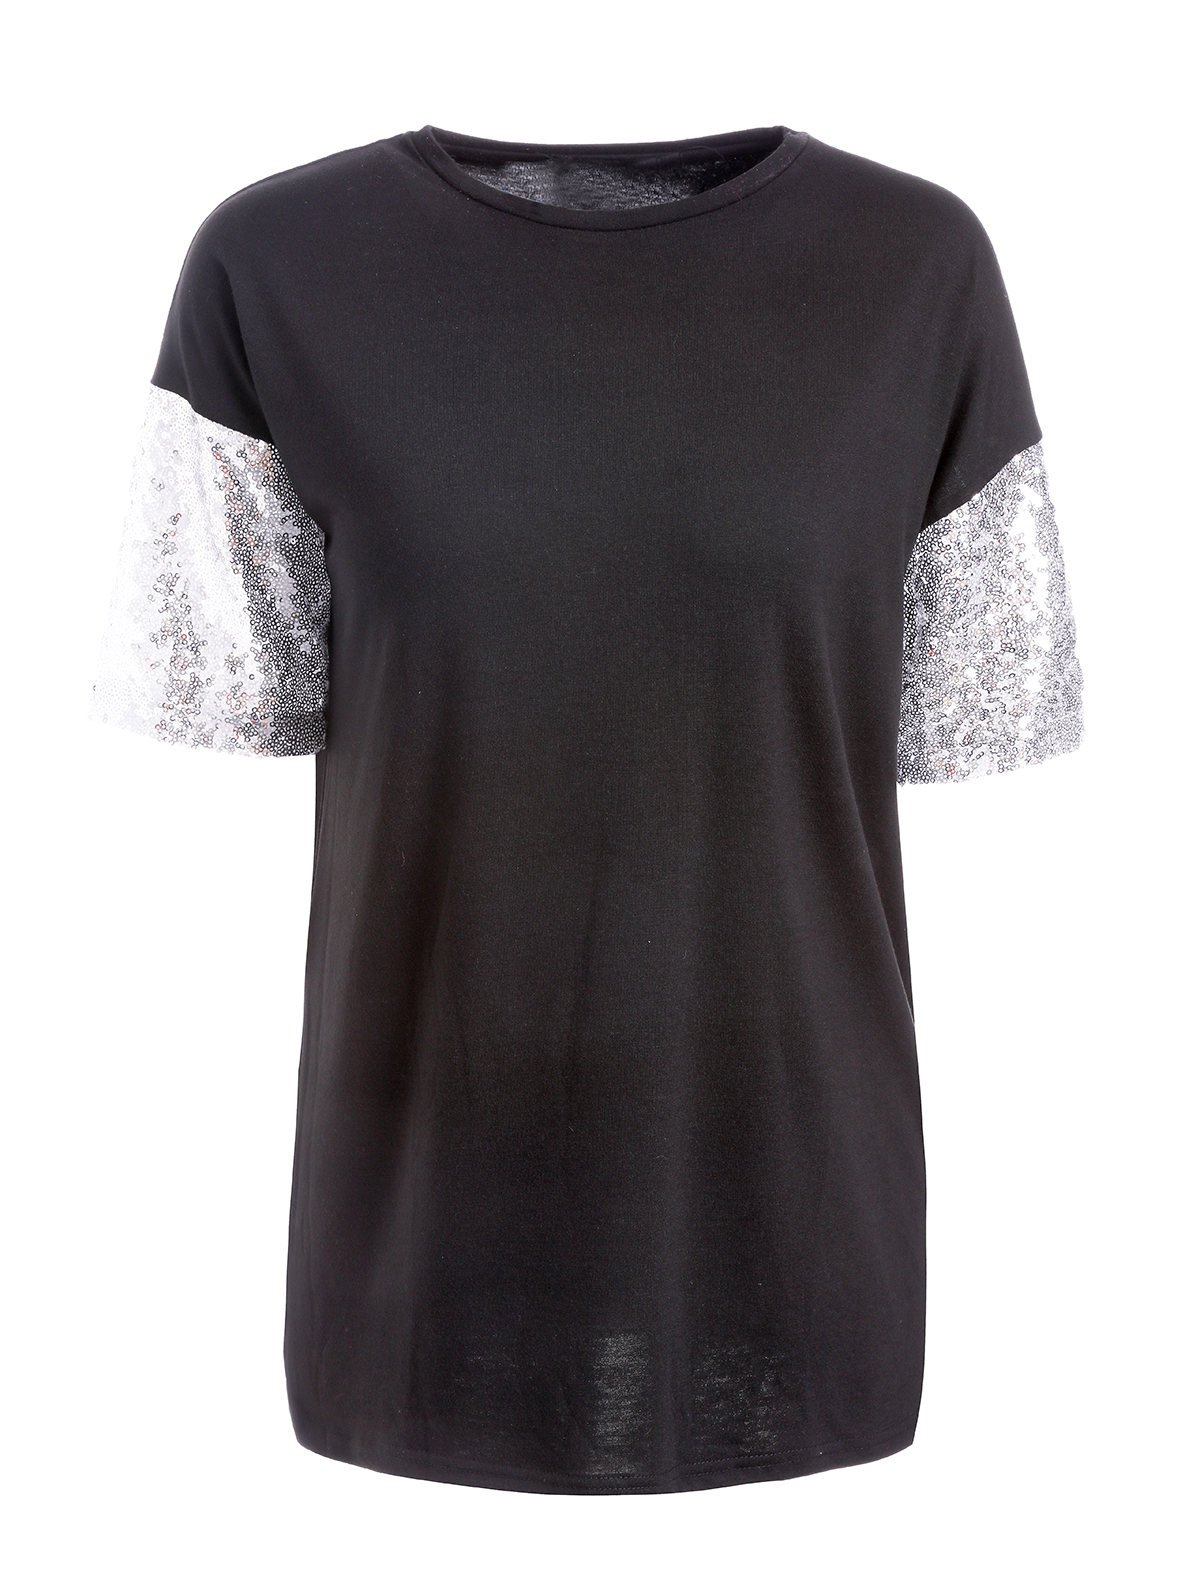 Casual Women's Round Neck Short Sleeve Sequined T-Shirt